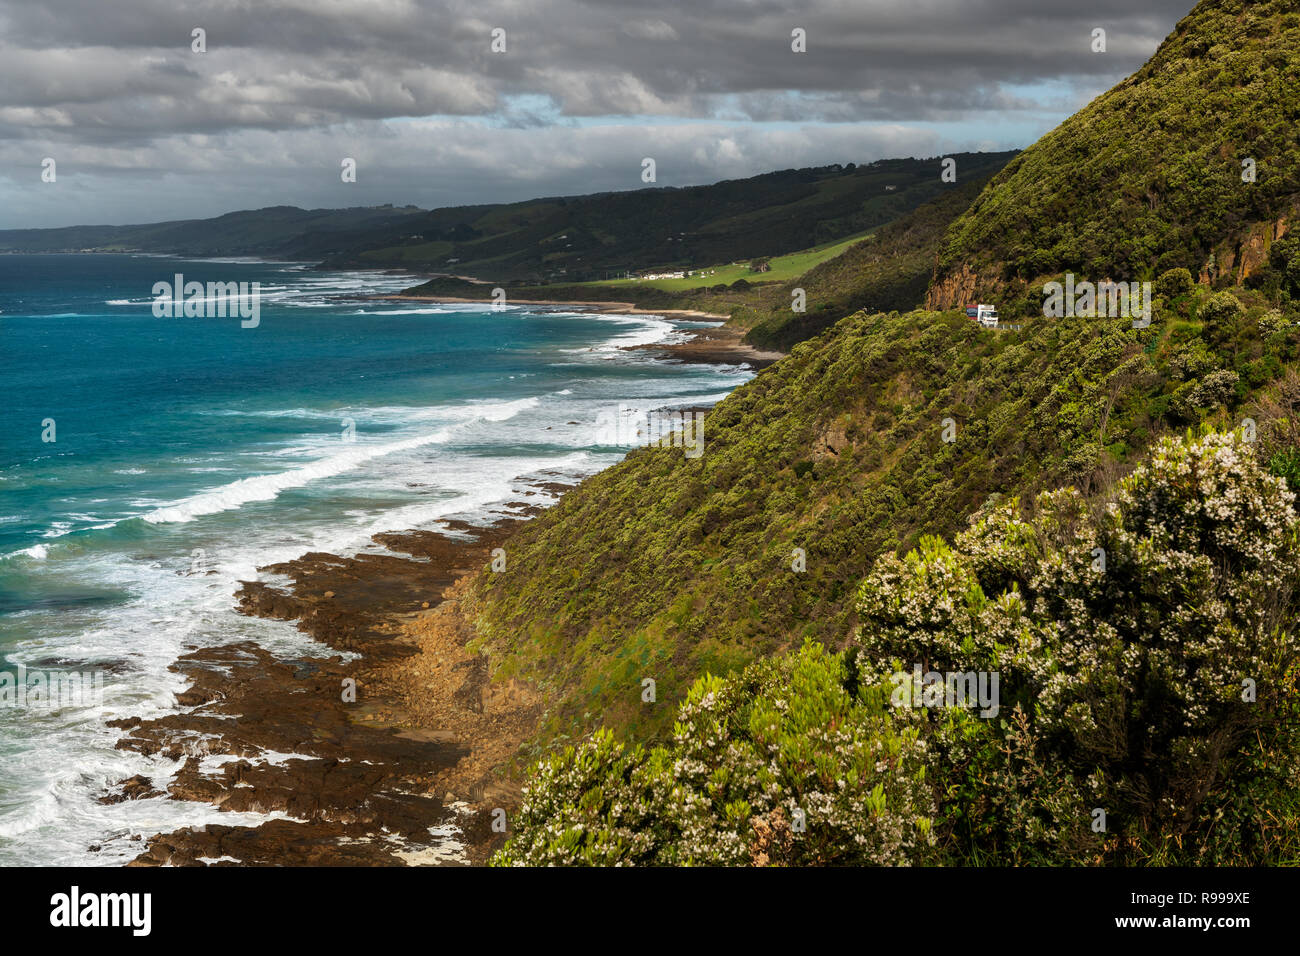 Scenery along the famous Great Ocean Road. - Stock Image